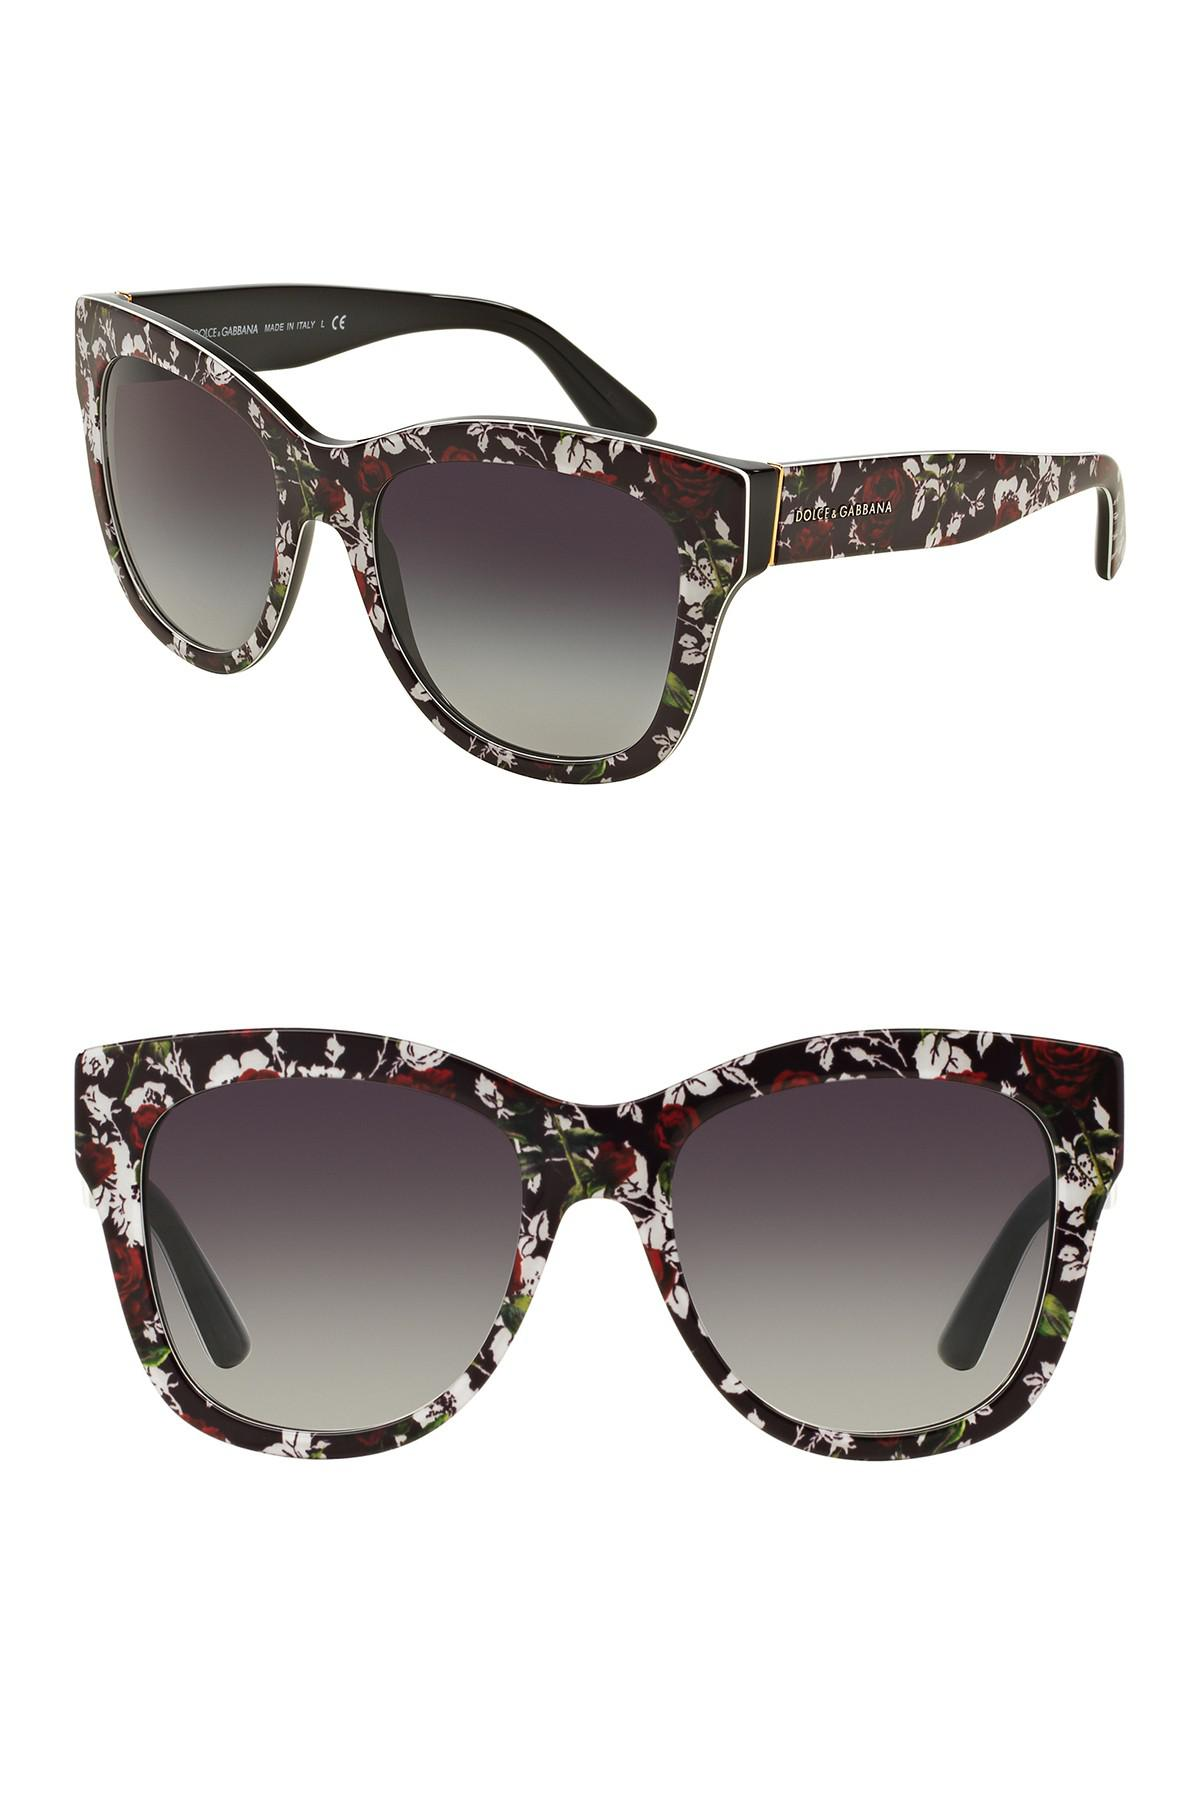 428eb2af24 Dolce   Gabbana - Multicolor 55mm Gradient Sunglasses - Lyst. View  fullscreen